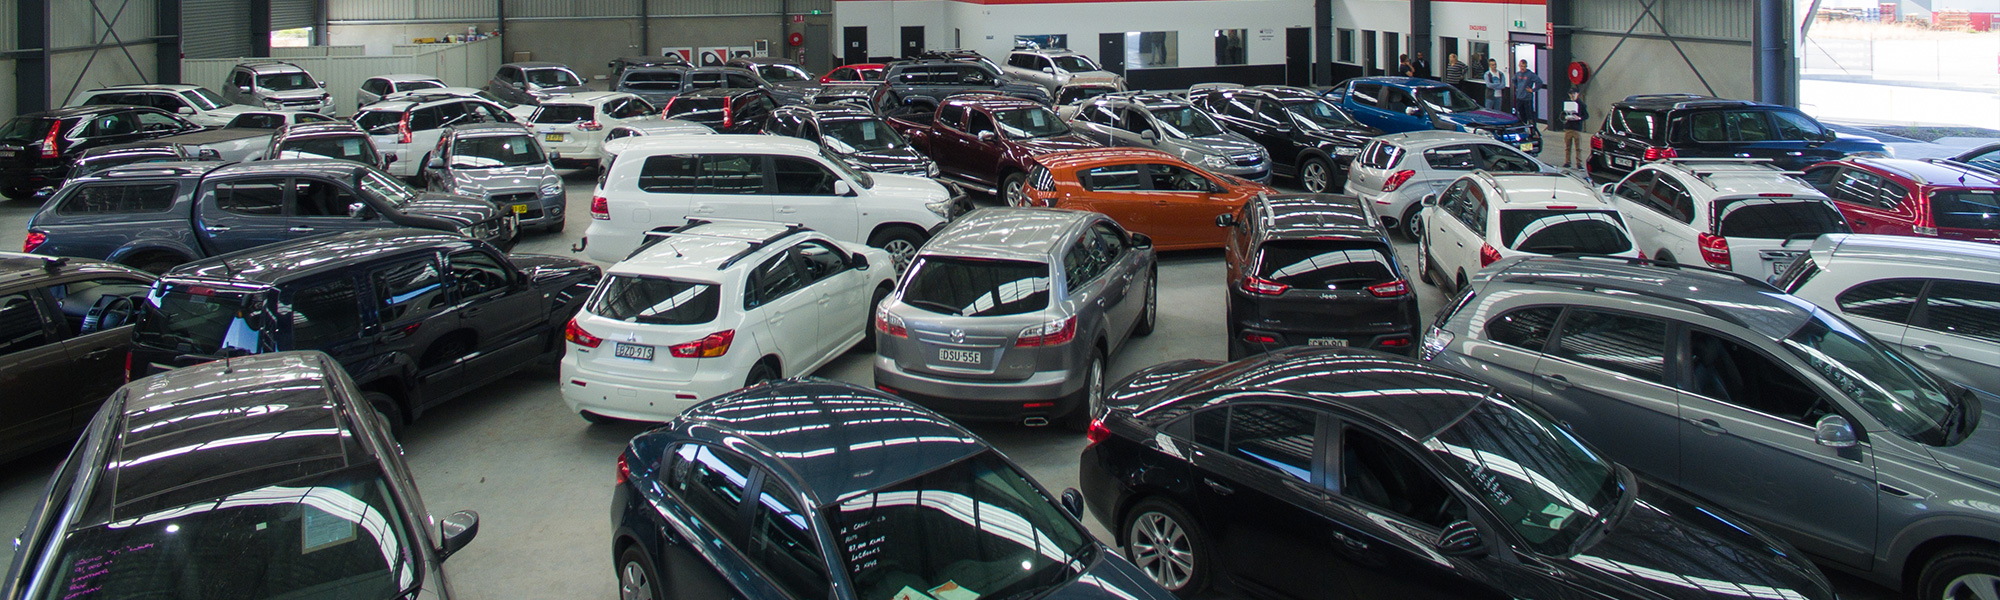 motor vehicle wholesale used car dealer at cardiff car auctions newcastle. Black Bedroom Furniture Sets. Home Design Ideas